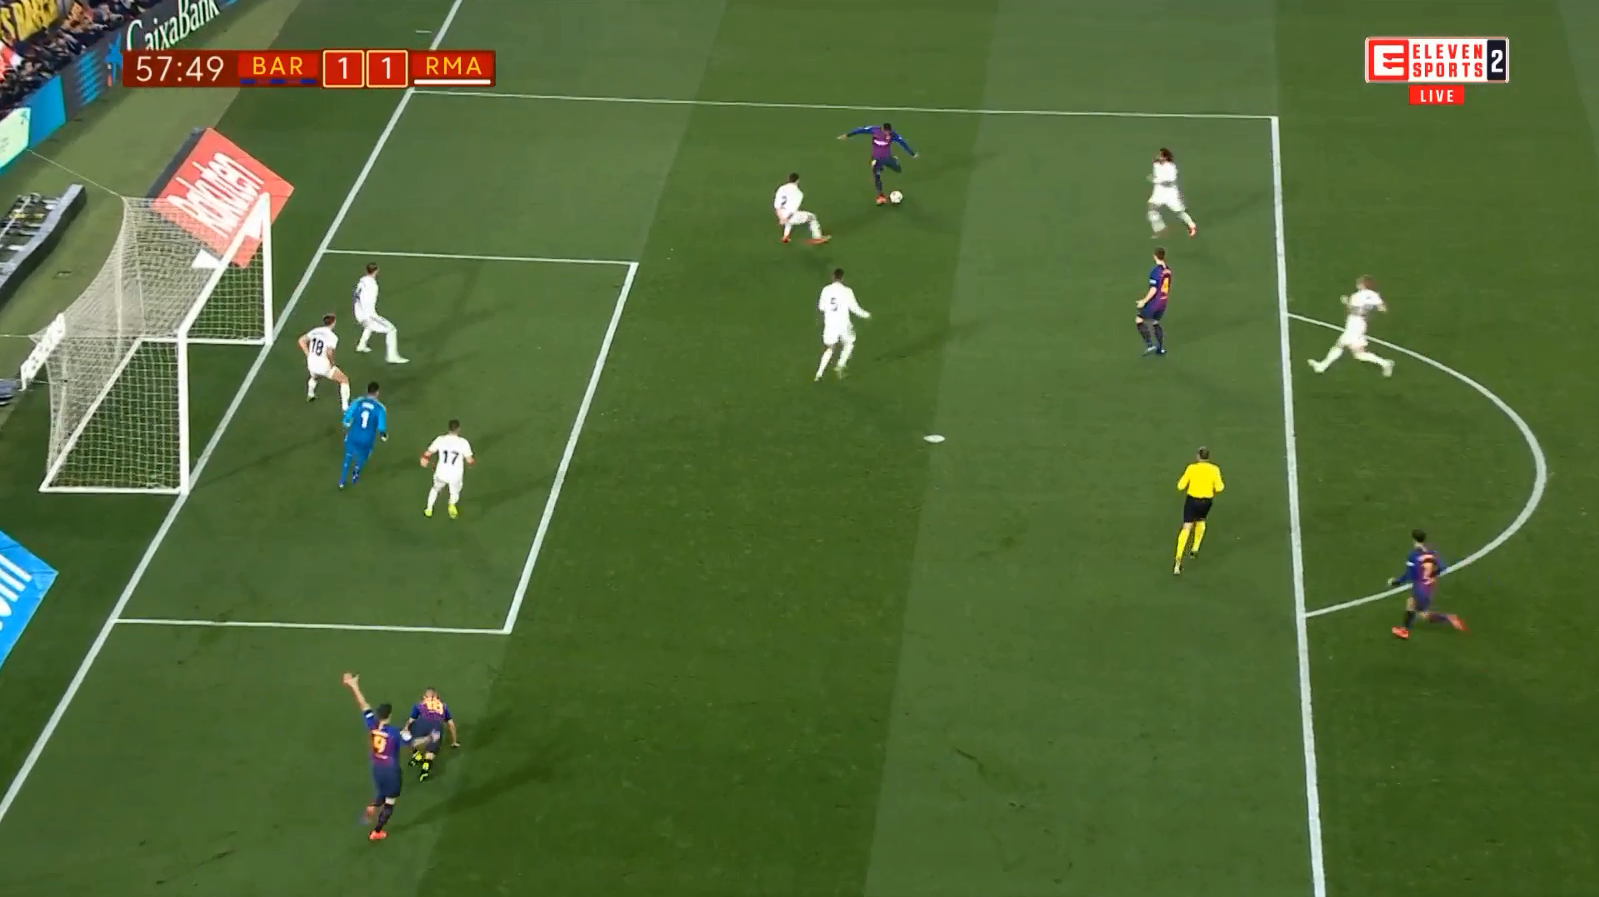 How am I supposed to tell my kids that Malcom scored from here?